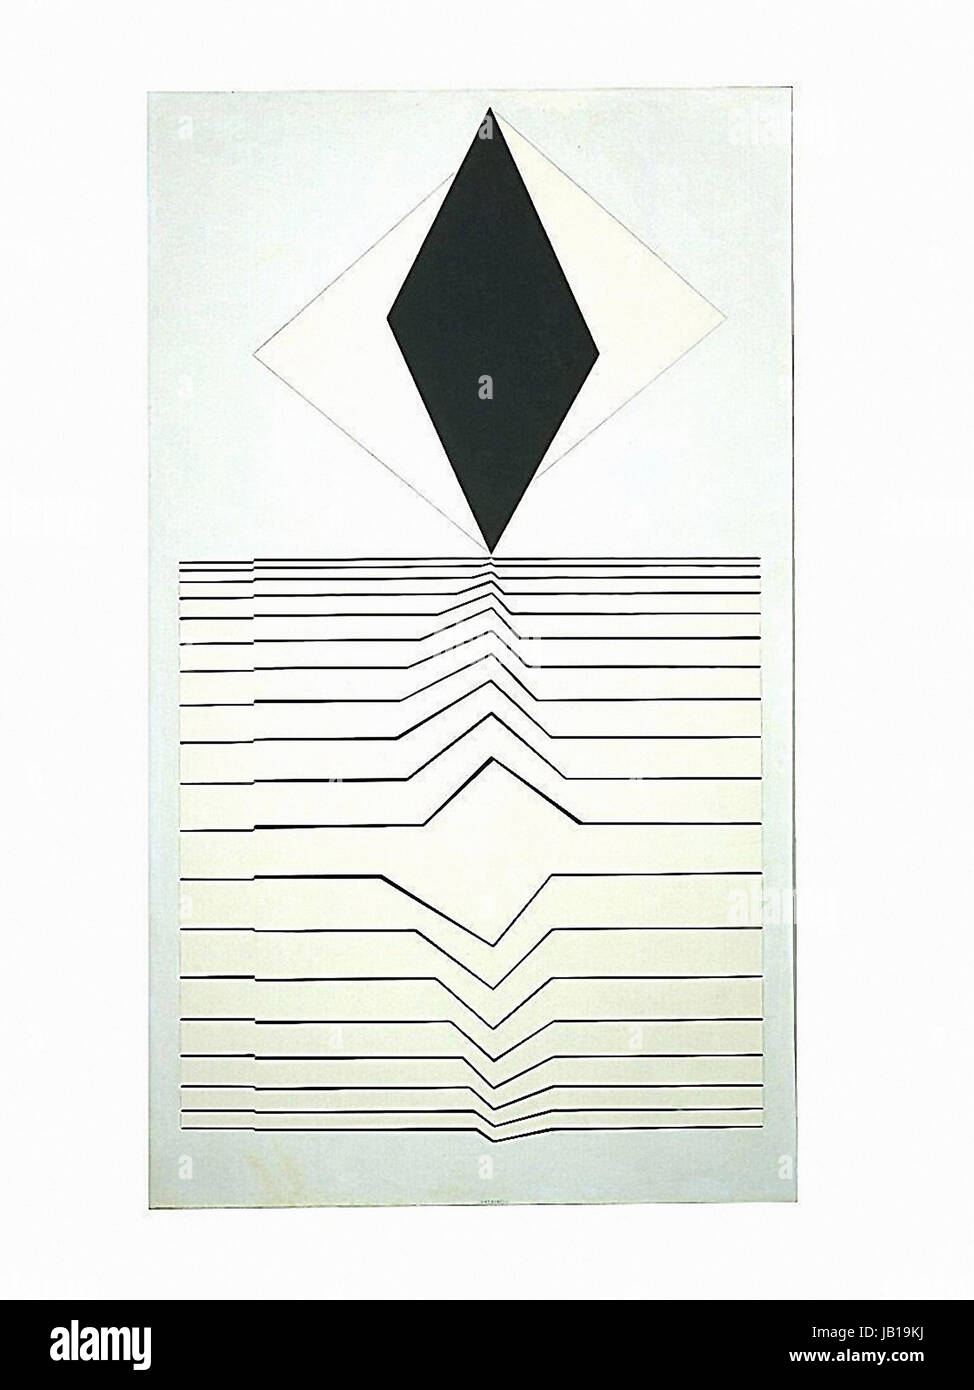 Victor Vasarely - Mizzar-  1956-1960. Oil on canvas - Stock Image